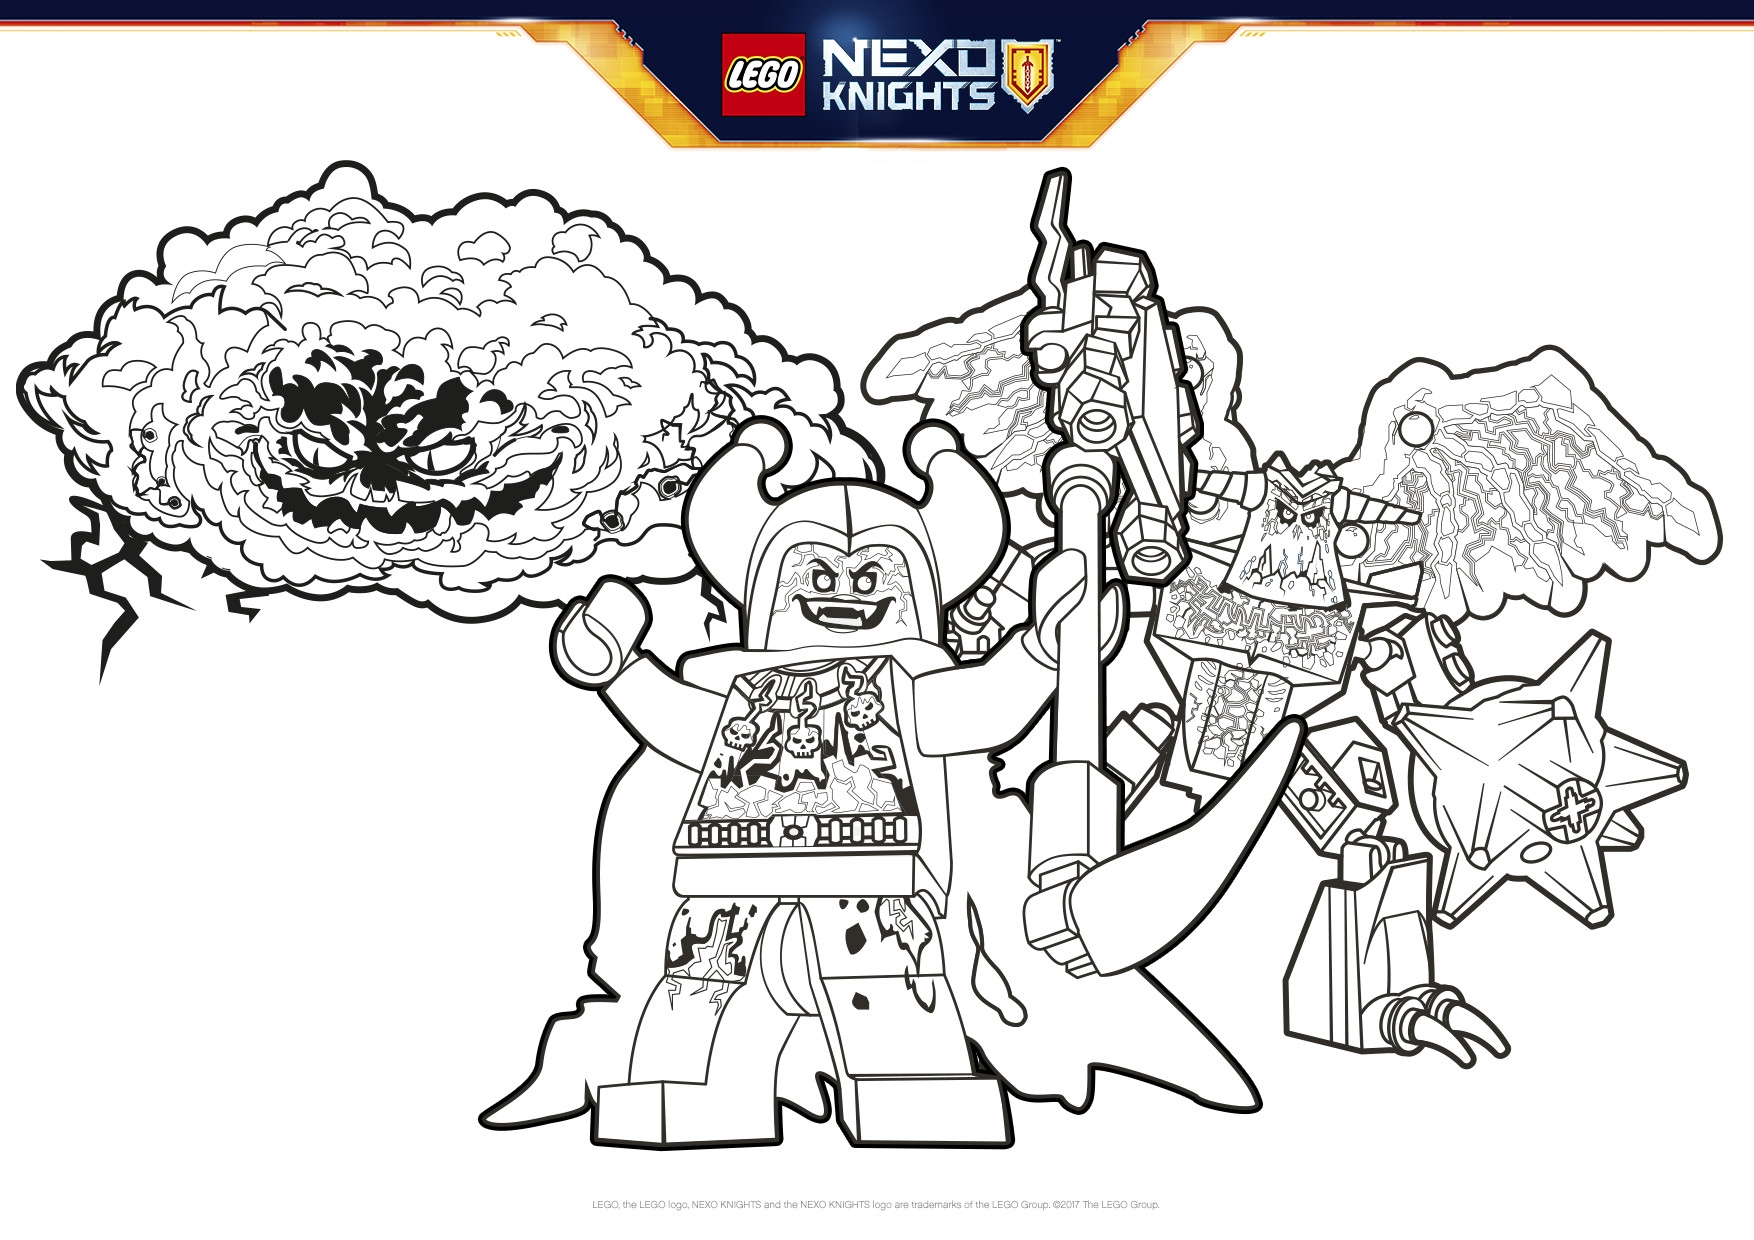 Nexo Knights Ausmalbilder Jestro : 23 Nexo Knights Coloring Pages Collections Free Coloring Pages